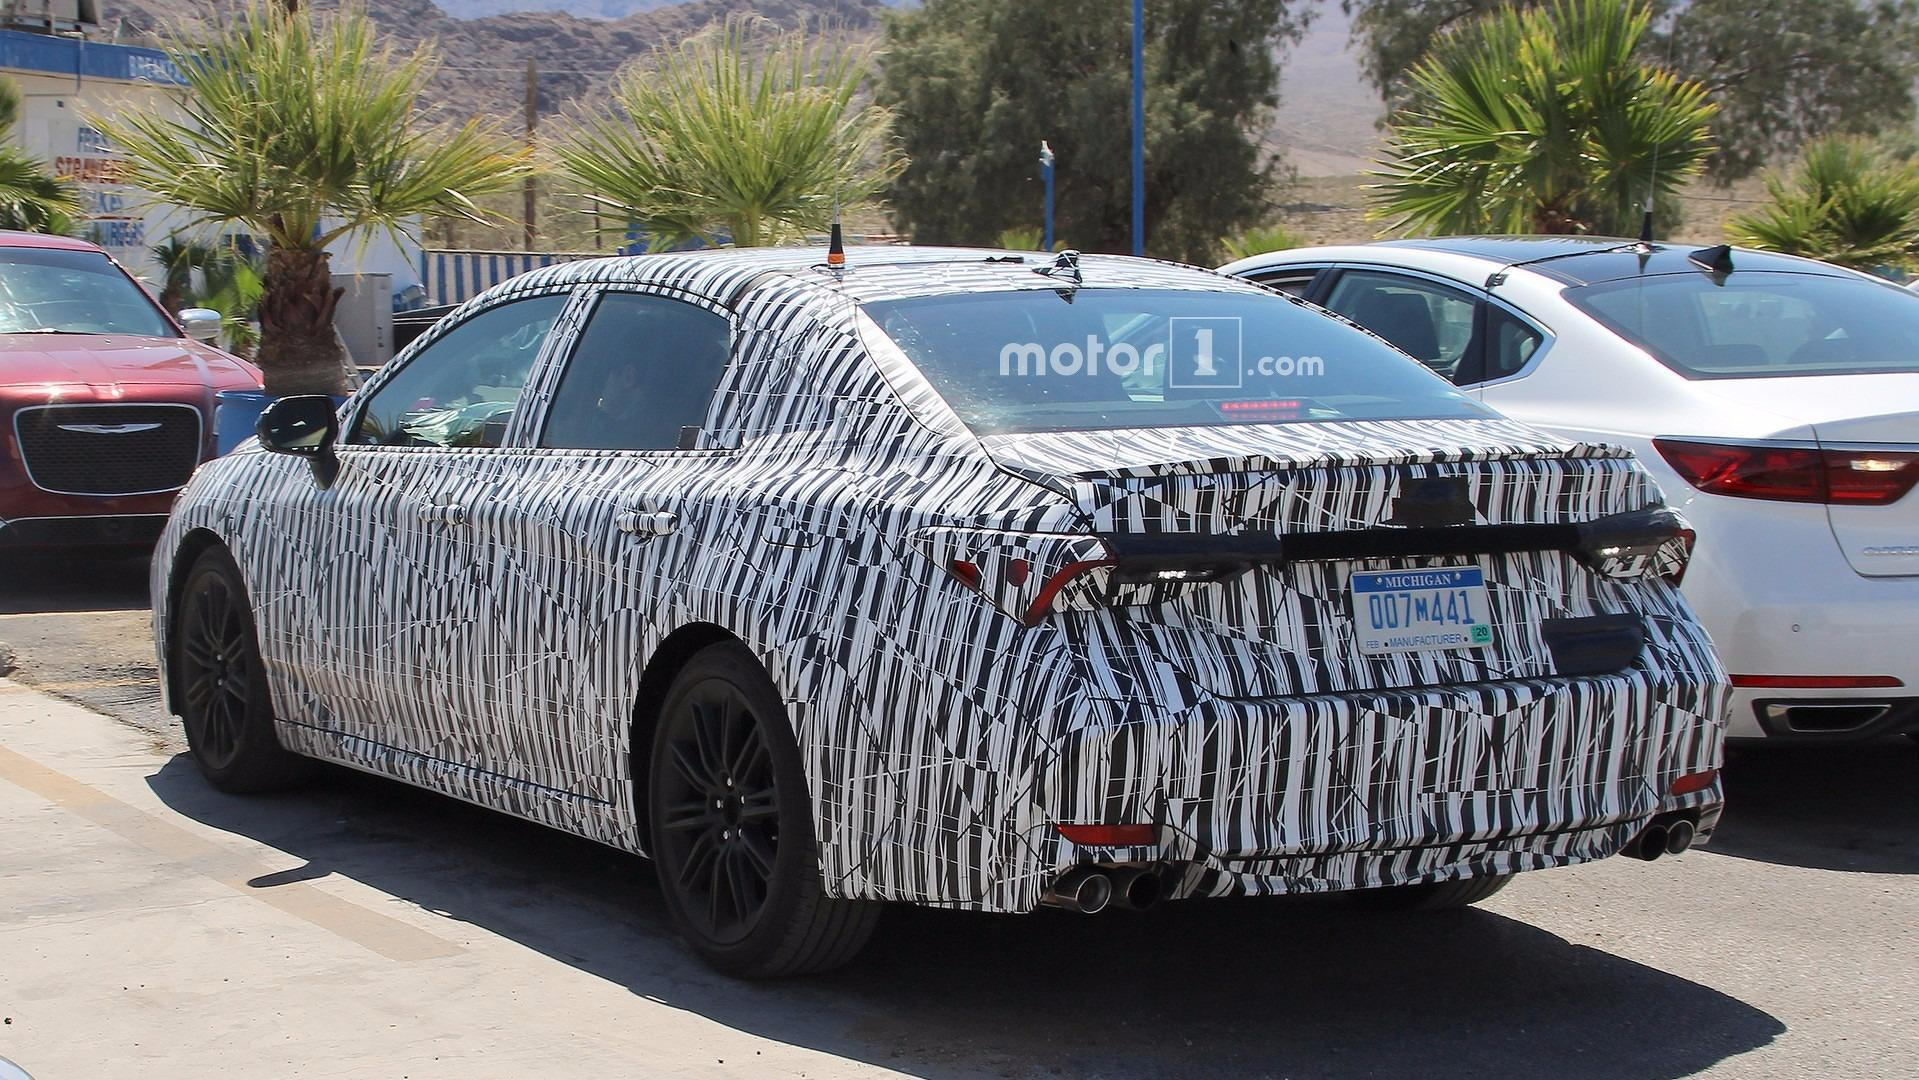 Possible but the spy shots suggest a window in the c pillar like the current generation avalon